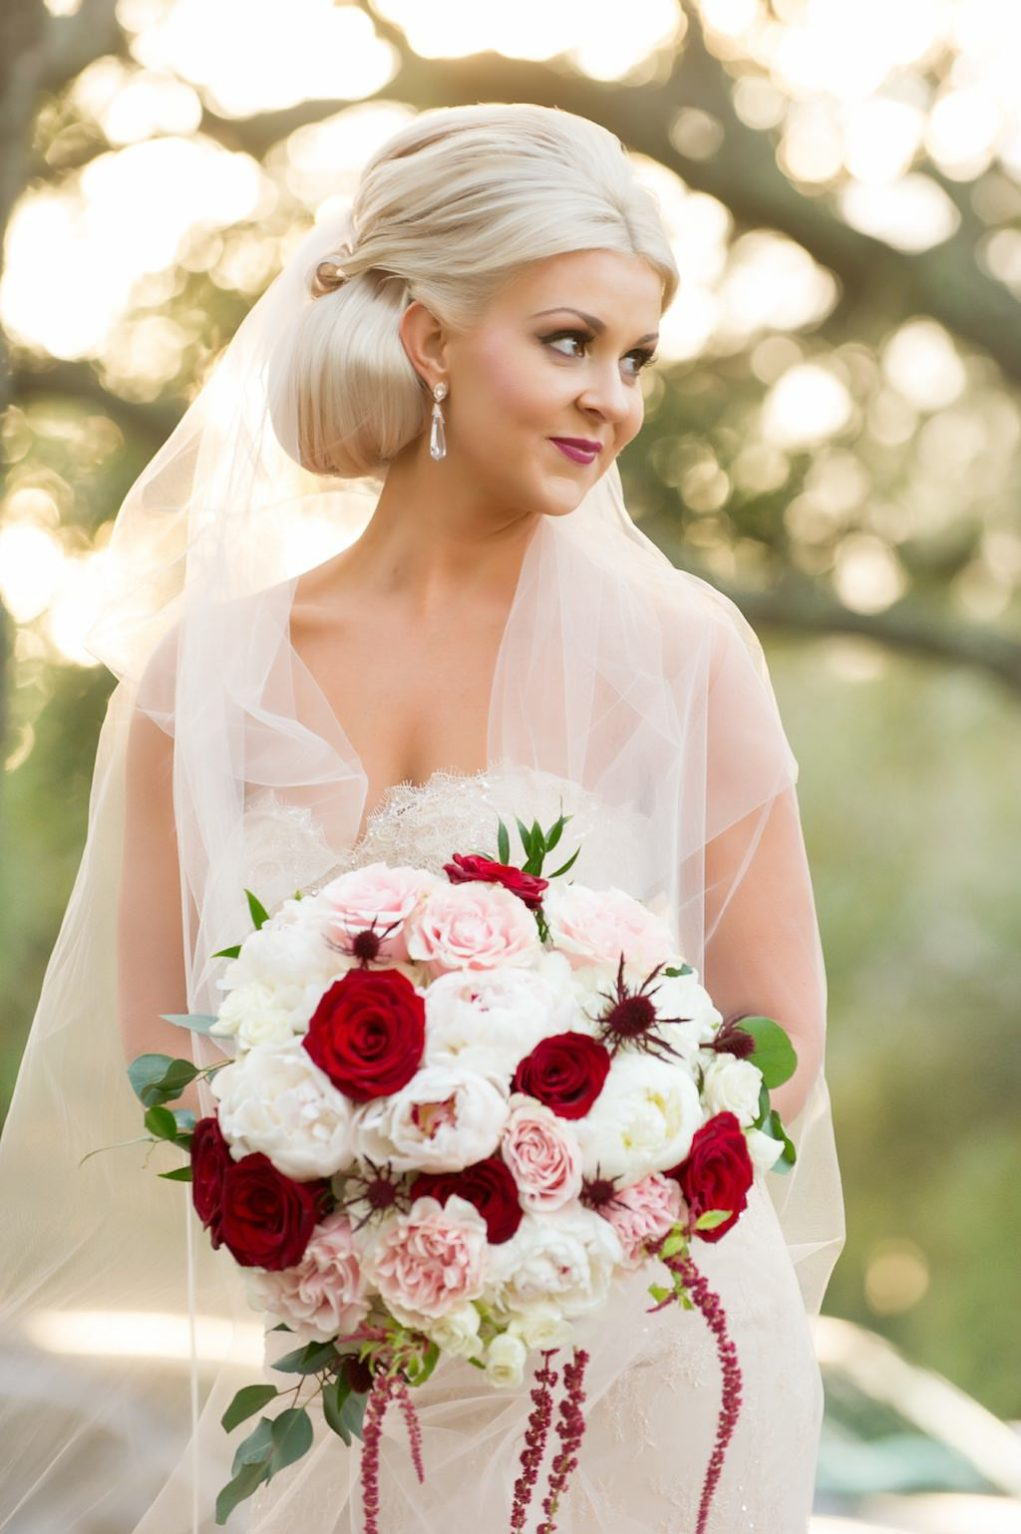 Outdoor Park Bridal Portrait in Blush Pink Strapless Wedding Dress with Red Rose, Blush Pink and White Floral and Greenery Bouquet | Tampa Bay Wedding Photographer Andi Diamond Photography | Hair and Makeup Michele Renee The Studio